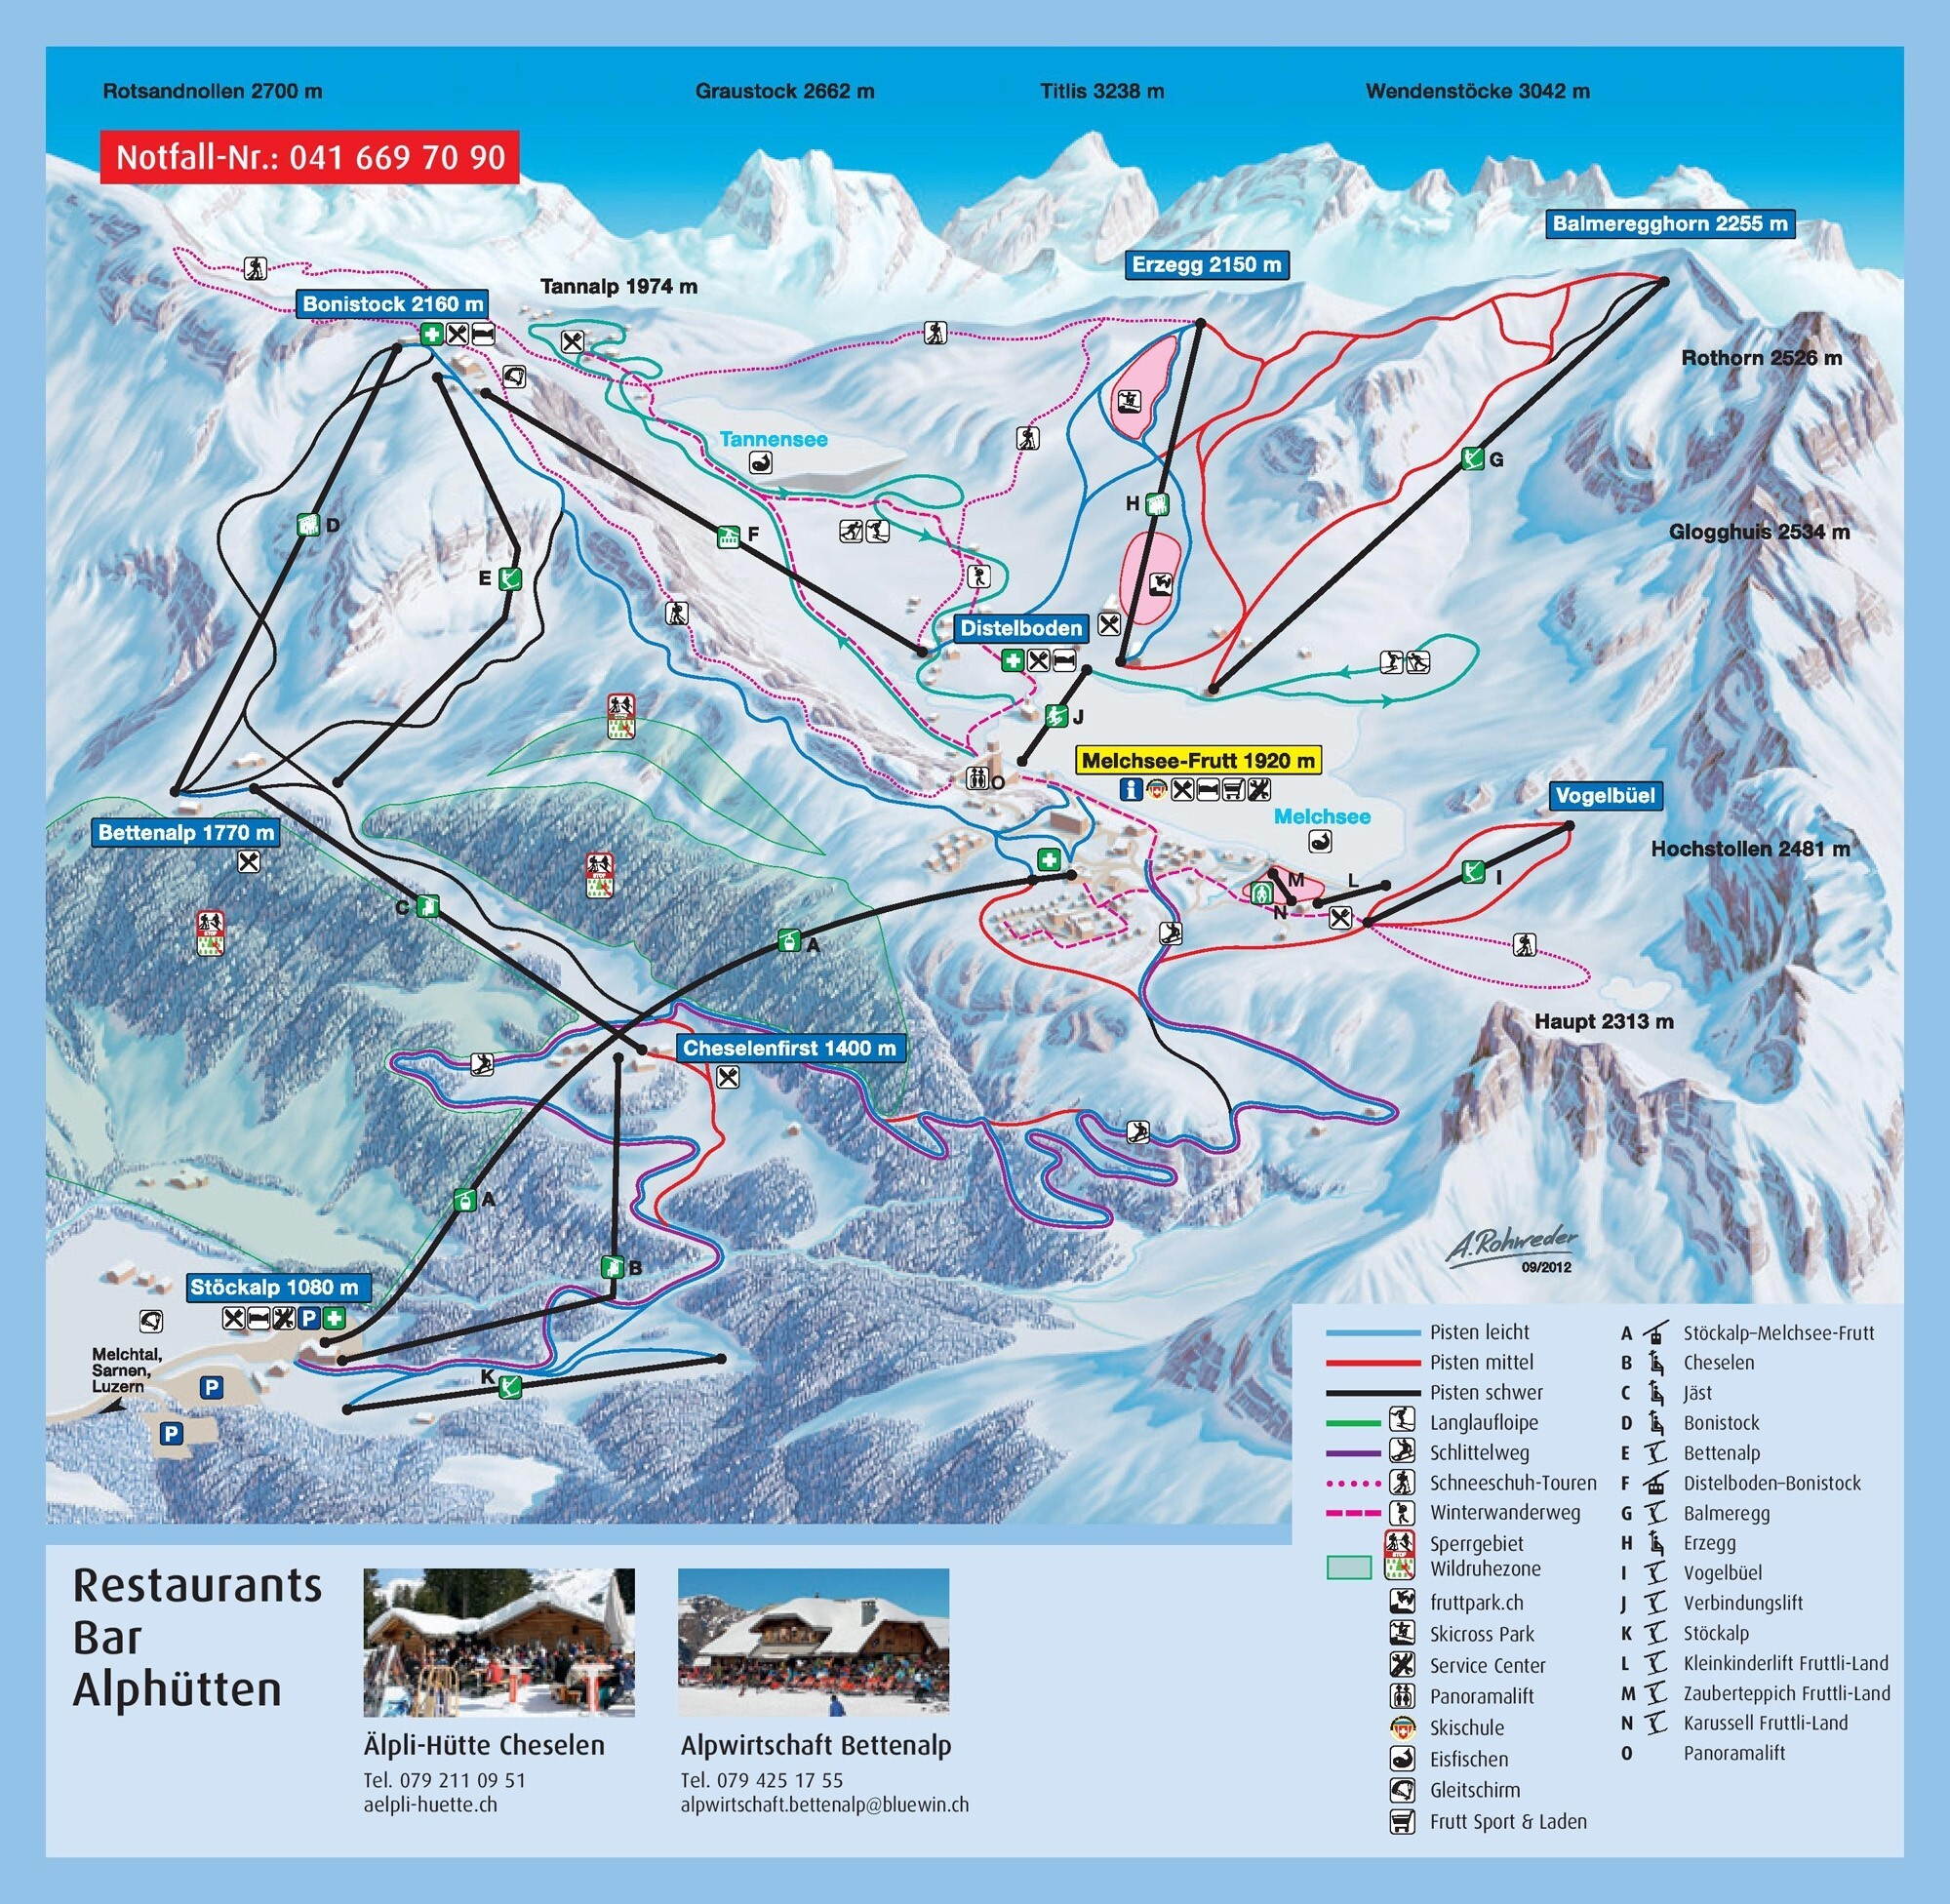 Melchsee-Frutt Piste / Trail Map